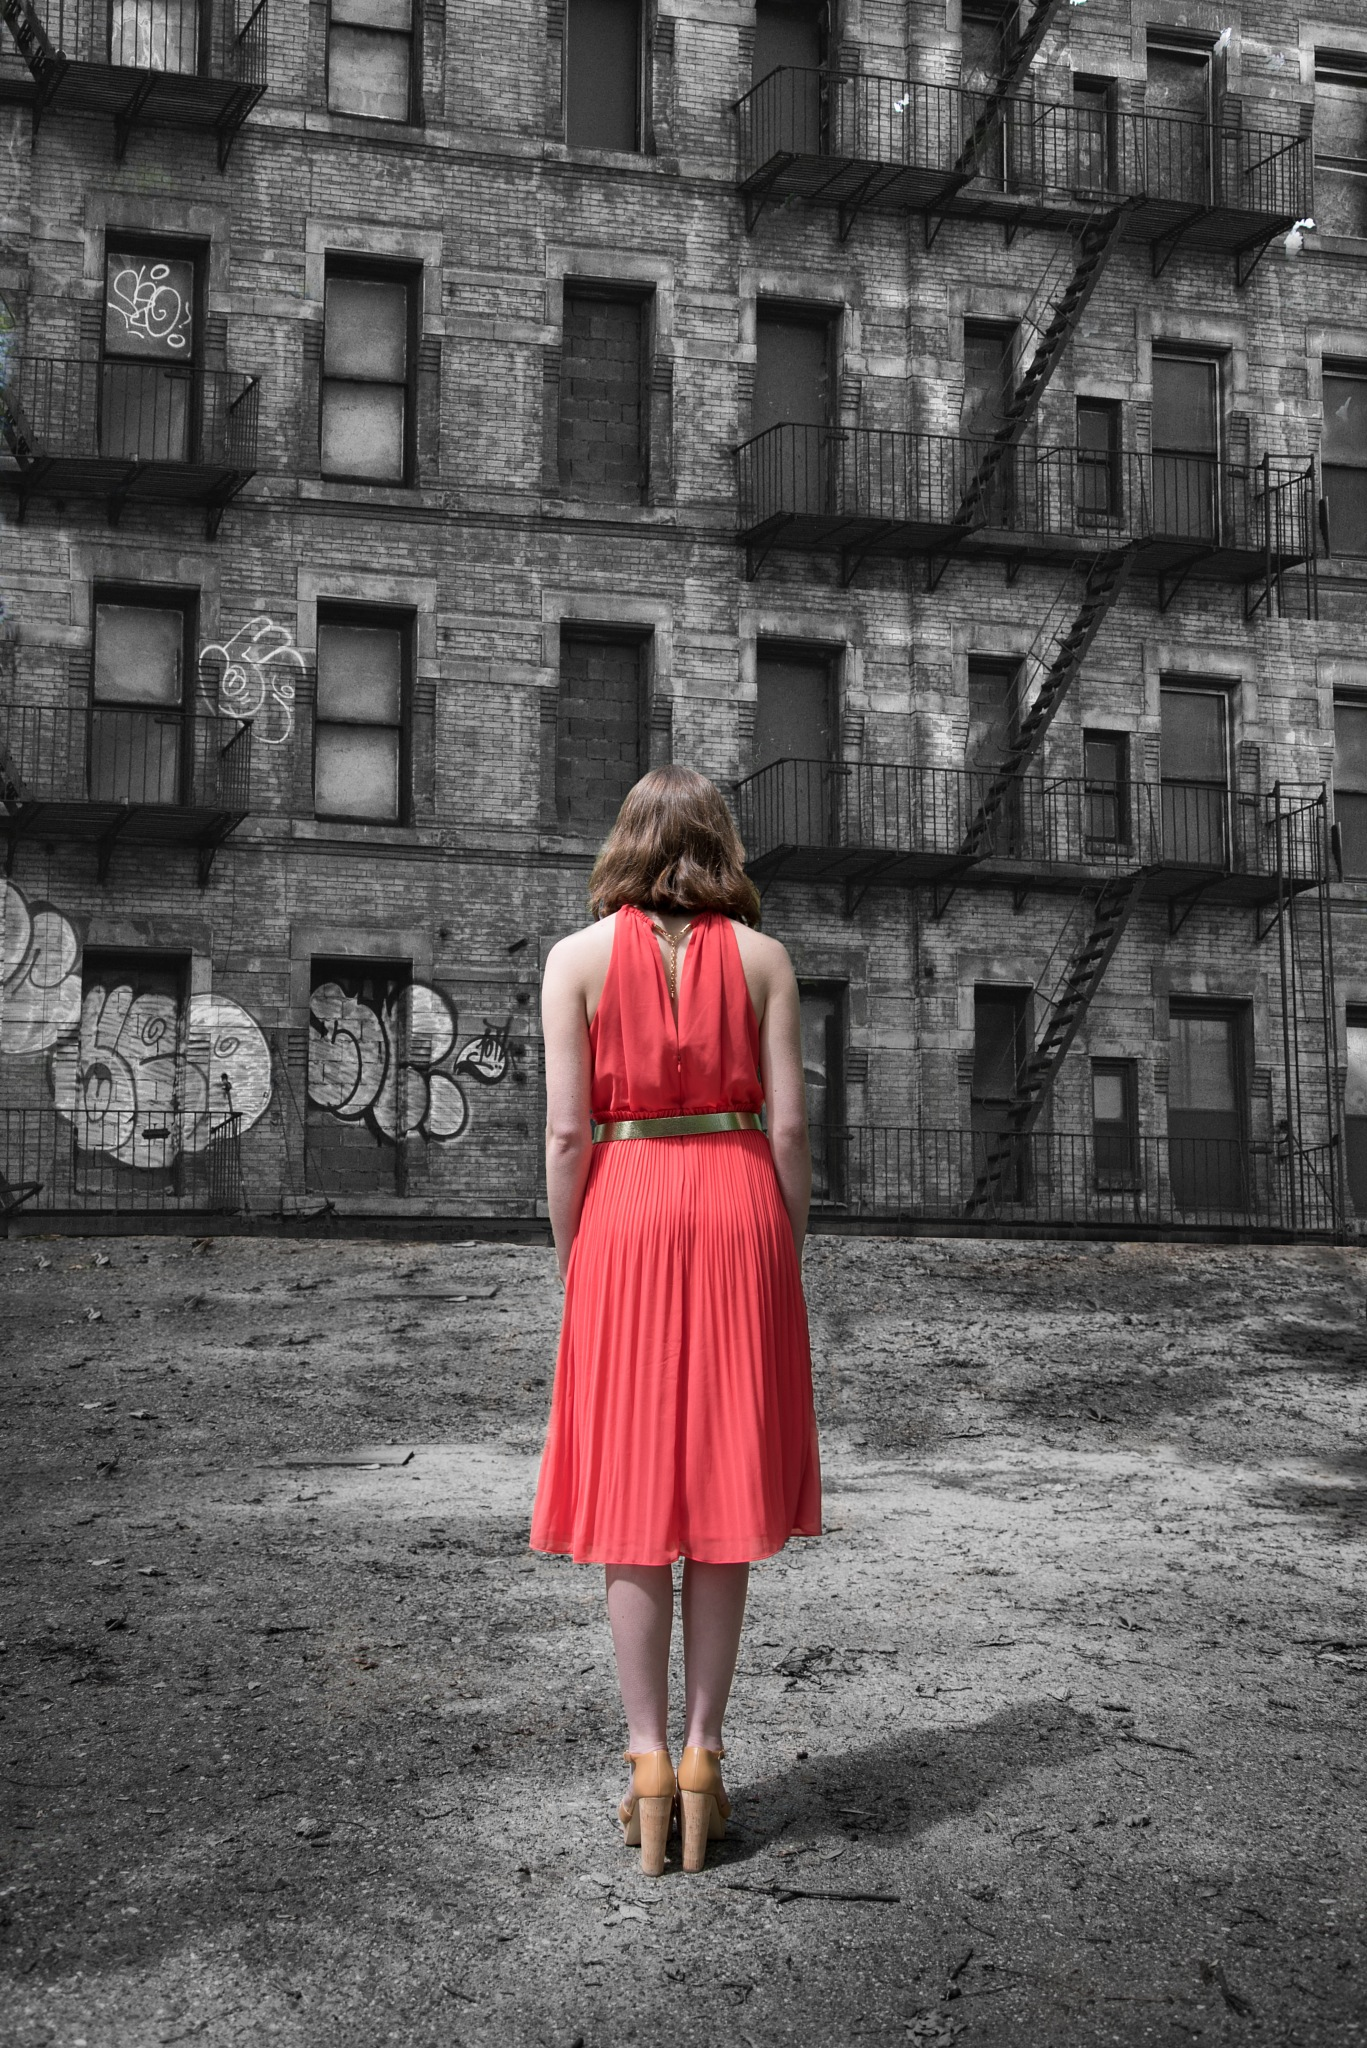 red dress in new york by nilix.bies